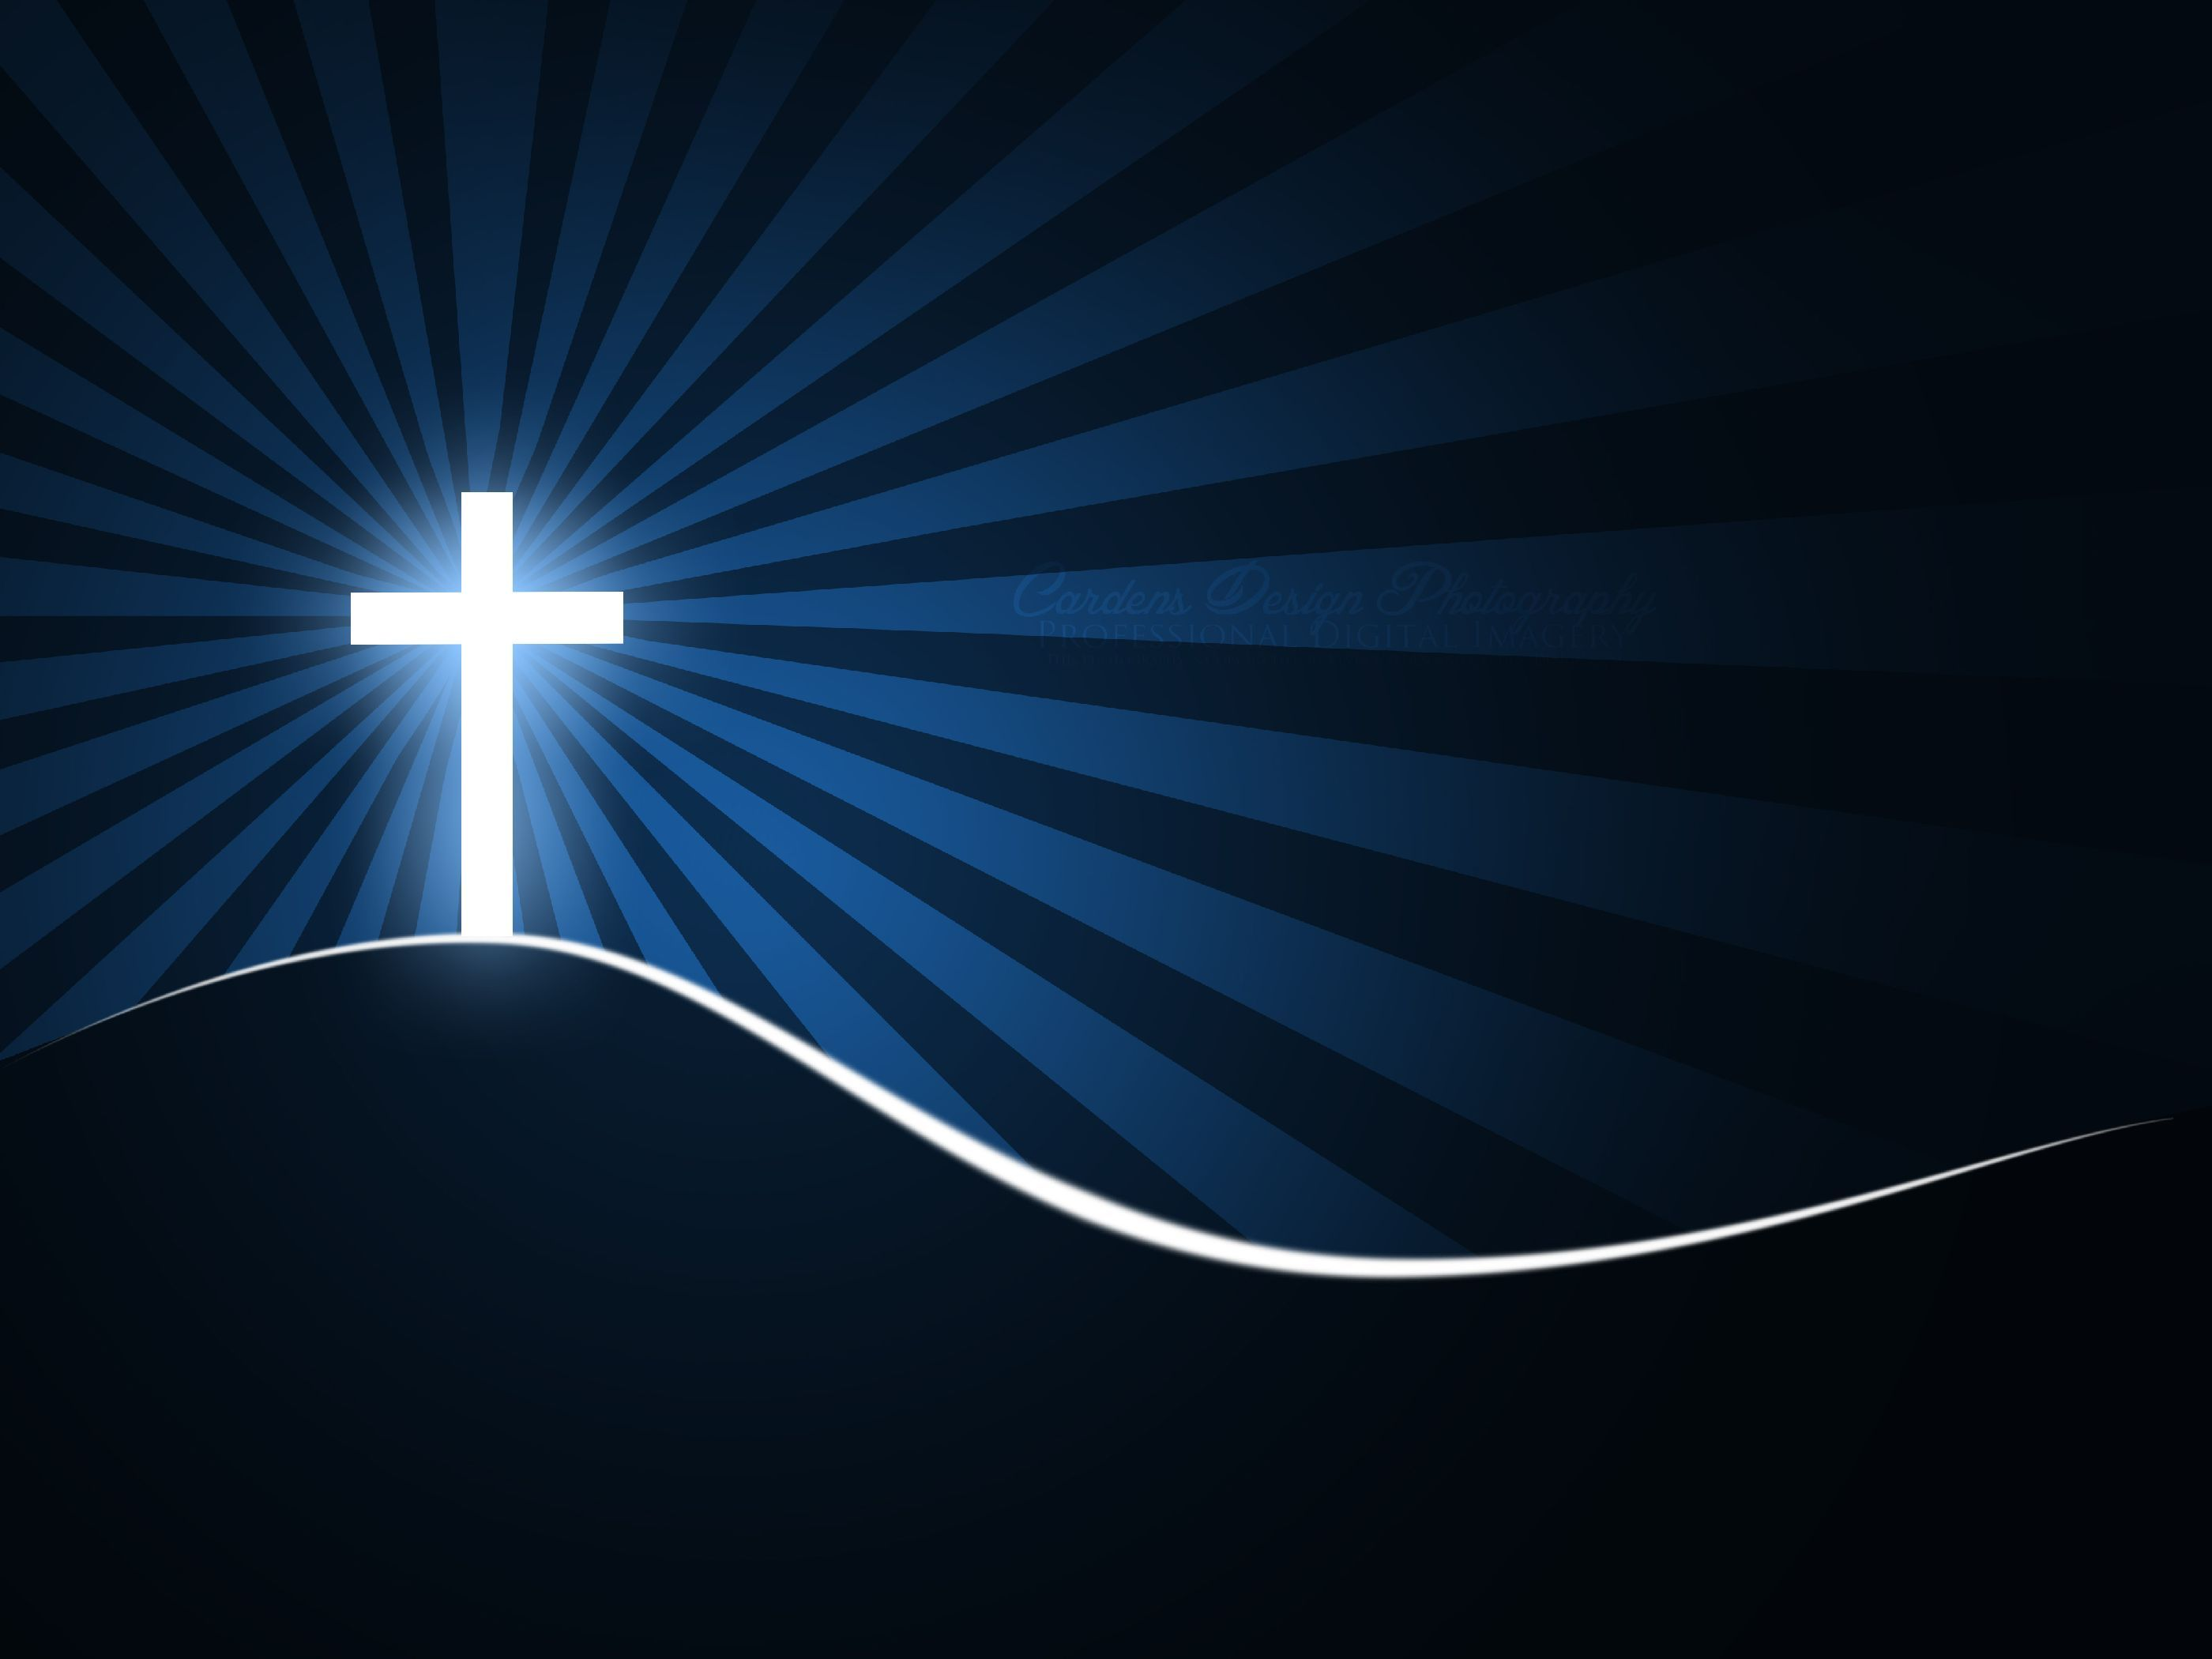 Christian pictures image code religion 0026 tags christian christian pictures image code religion 0026 tags christian background christian wallpaper cross voltagebd Gallery